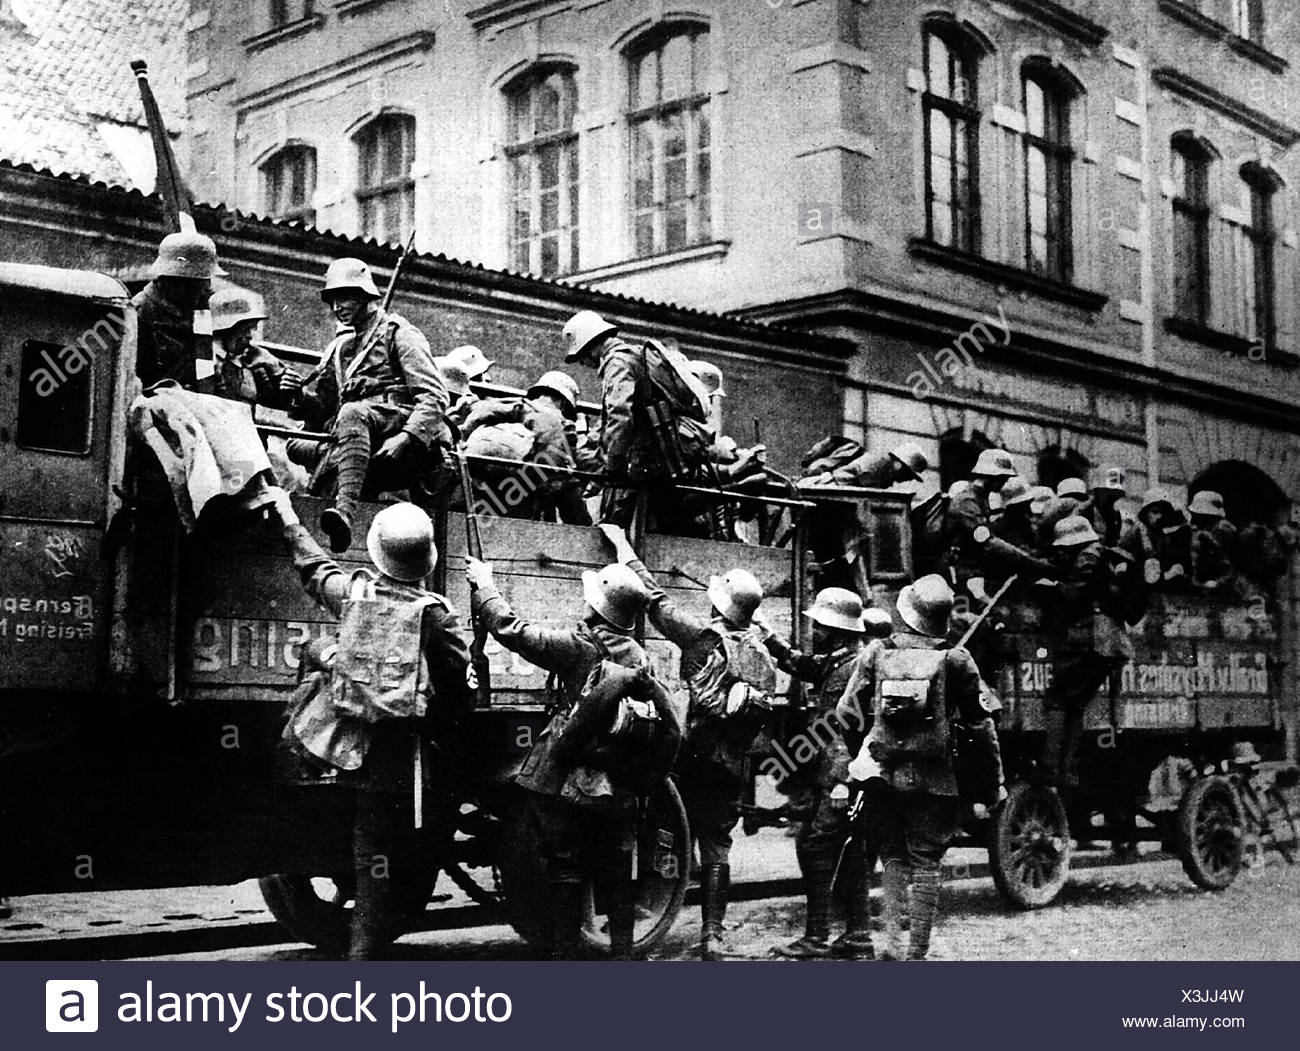 events, Beer Hall Putsch, 1923, rebells, men of SA (Storm Division/Sturmabteilung), getting on a lorry, Munich, 9.11.1923, Nazism, Third Reich, Hitler, Ludendorff, uniform, soldiers, event, Nazi Germany, politics, historic, historical, people, 20th century, 1920s, Additional-Rights-Clearances-NA - Stock Image